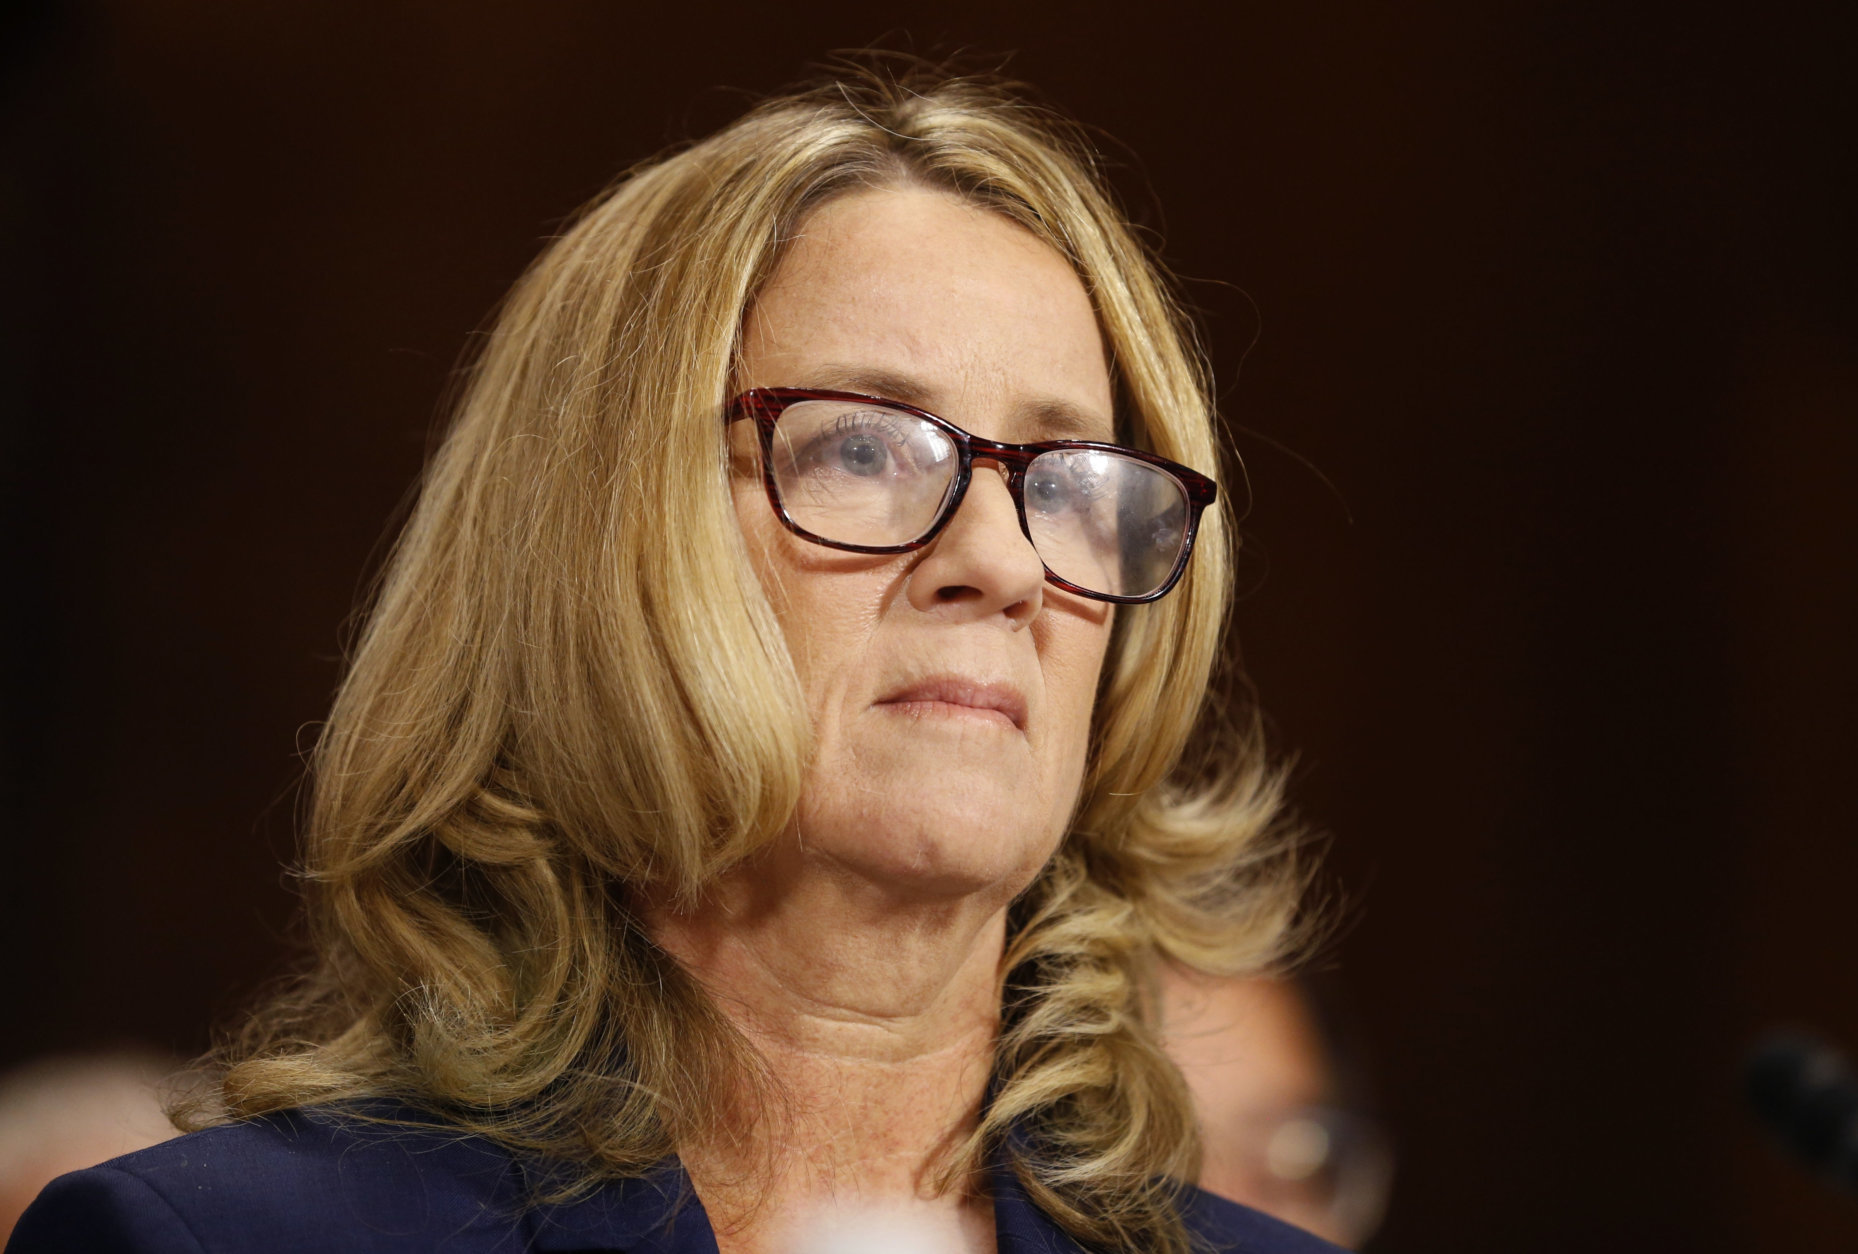 Christine Blasey Ford arrives to testify before the Senate Judiciary Committee on Capitol Hill in Washington, Thursday, Sept. 27, 2018. (Michael Reynolds/Pool Photo via AP)